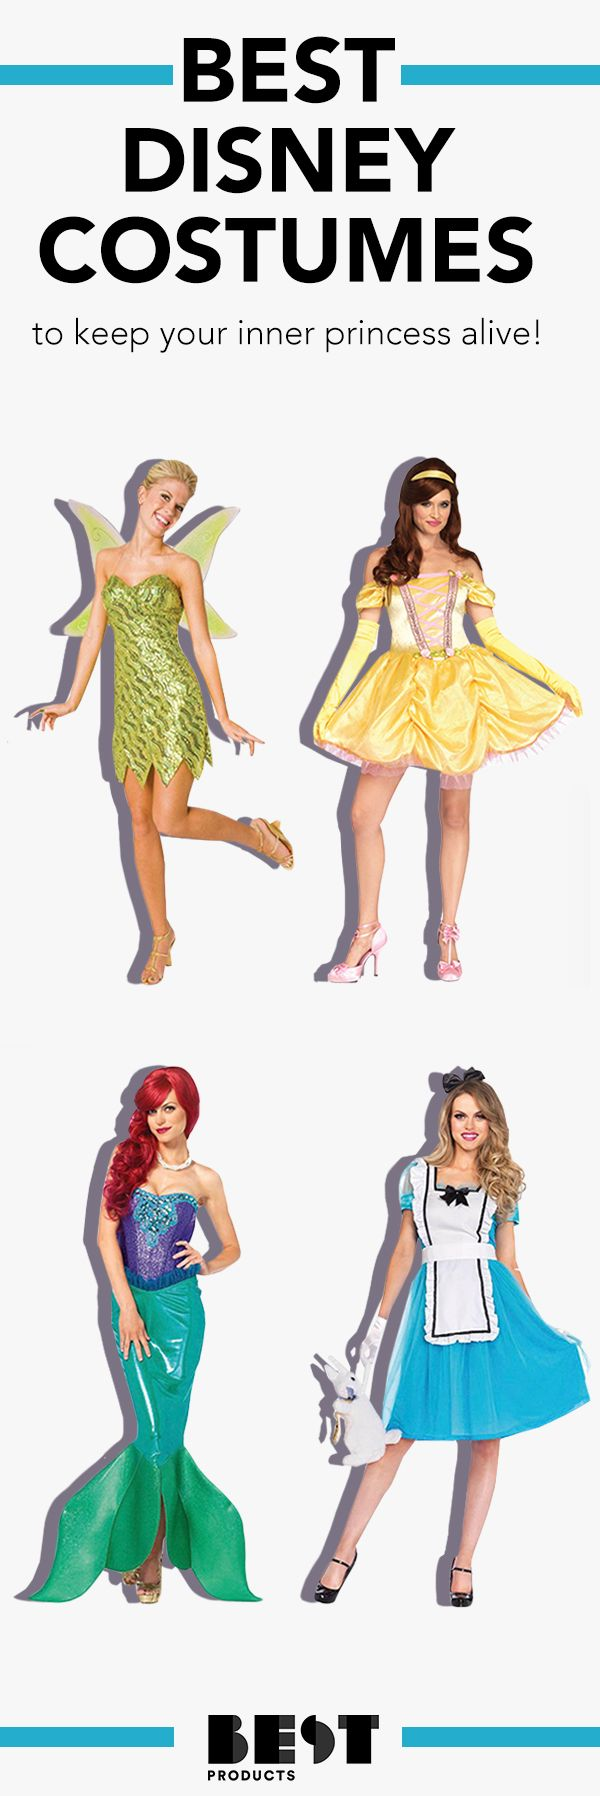 17 Best Disney Costumes for Adults in 2018 - Womens Disney Character ...